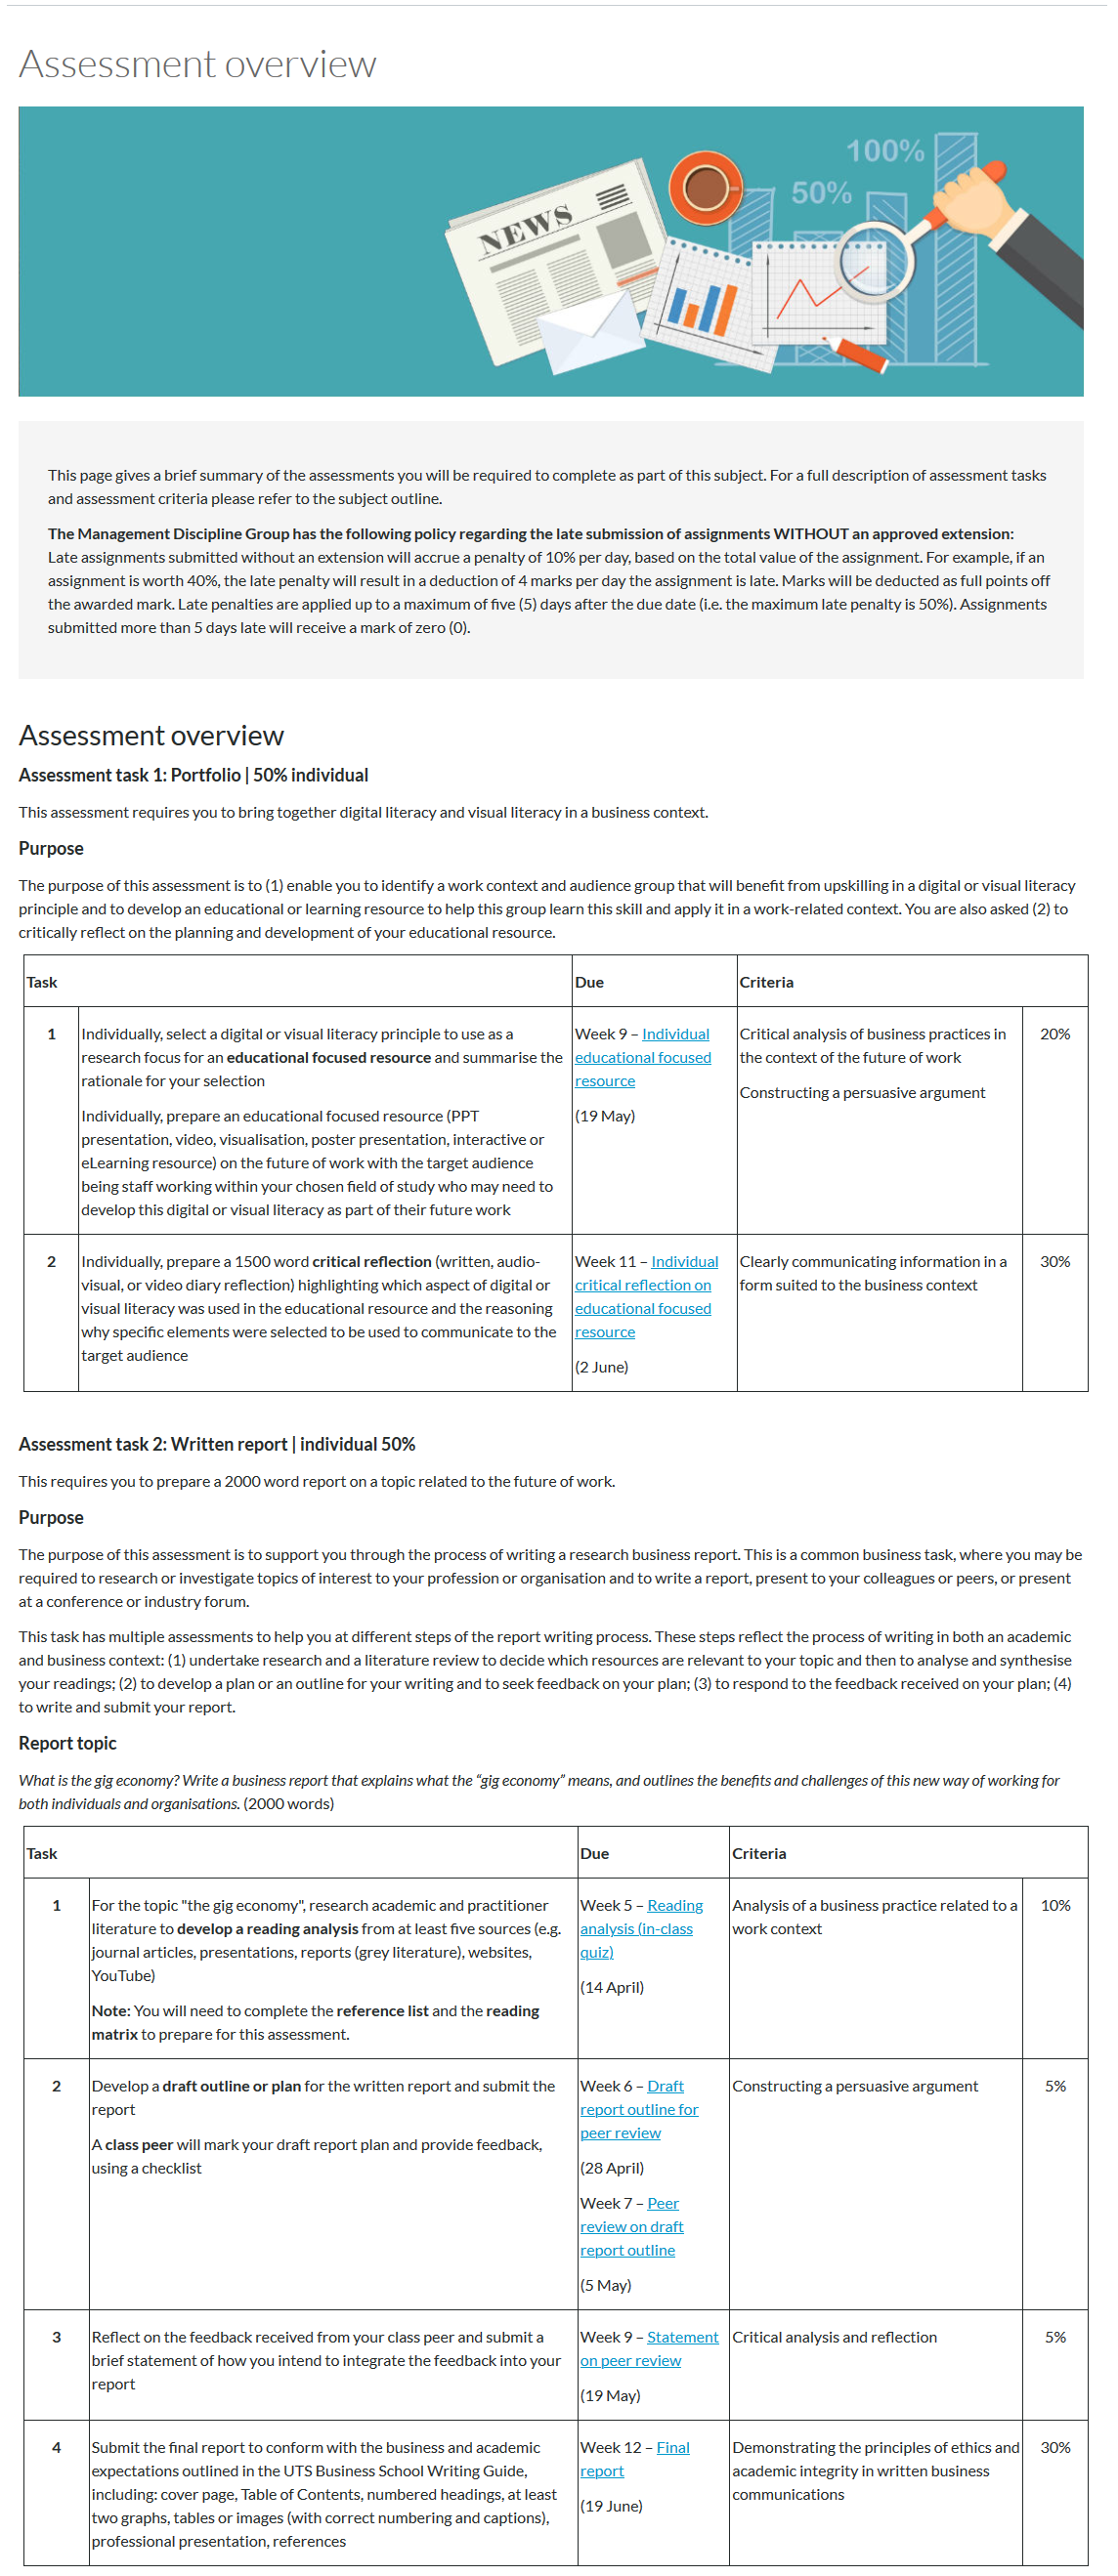 An assessment overview page, with each assessment sectioned with a heading. Each assessment section also includes a task table of what students need to complete for each assessment.